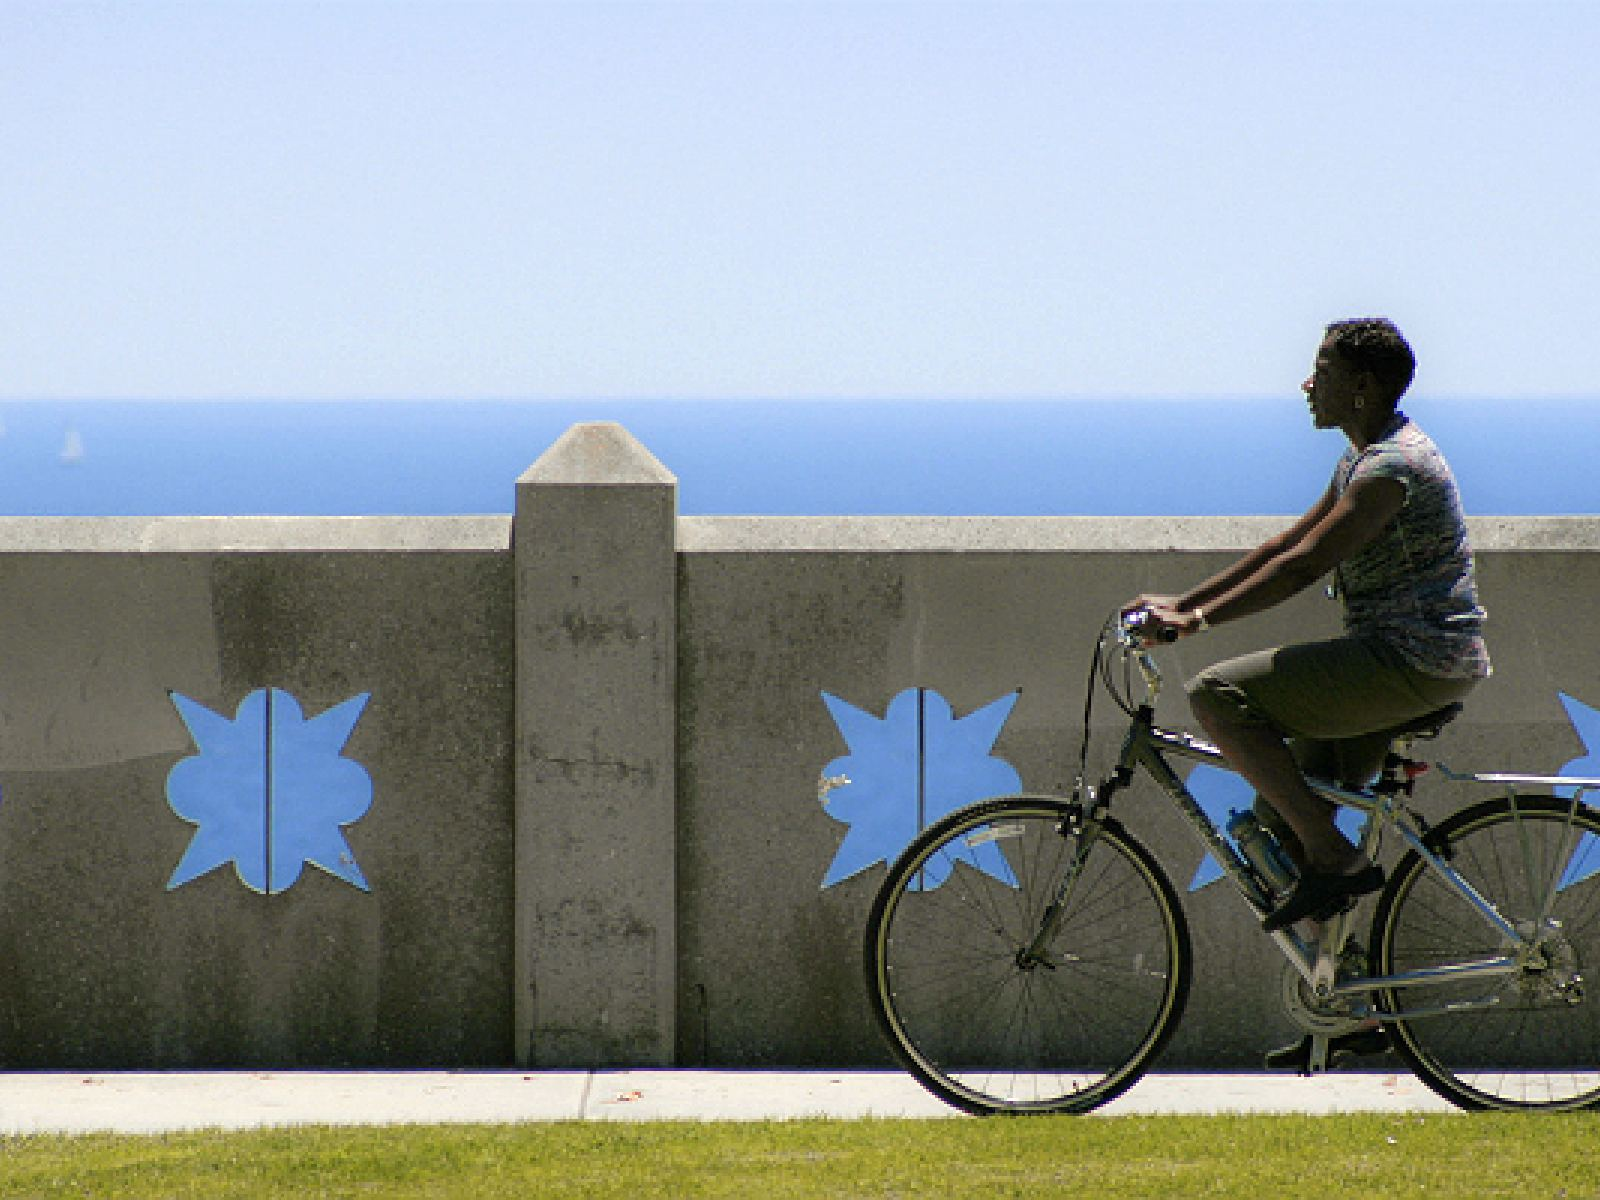 Main image for guide titled Celebrate World Car Free Day in Los Angeles